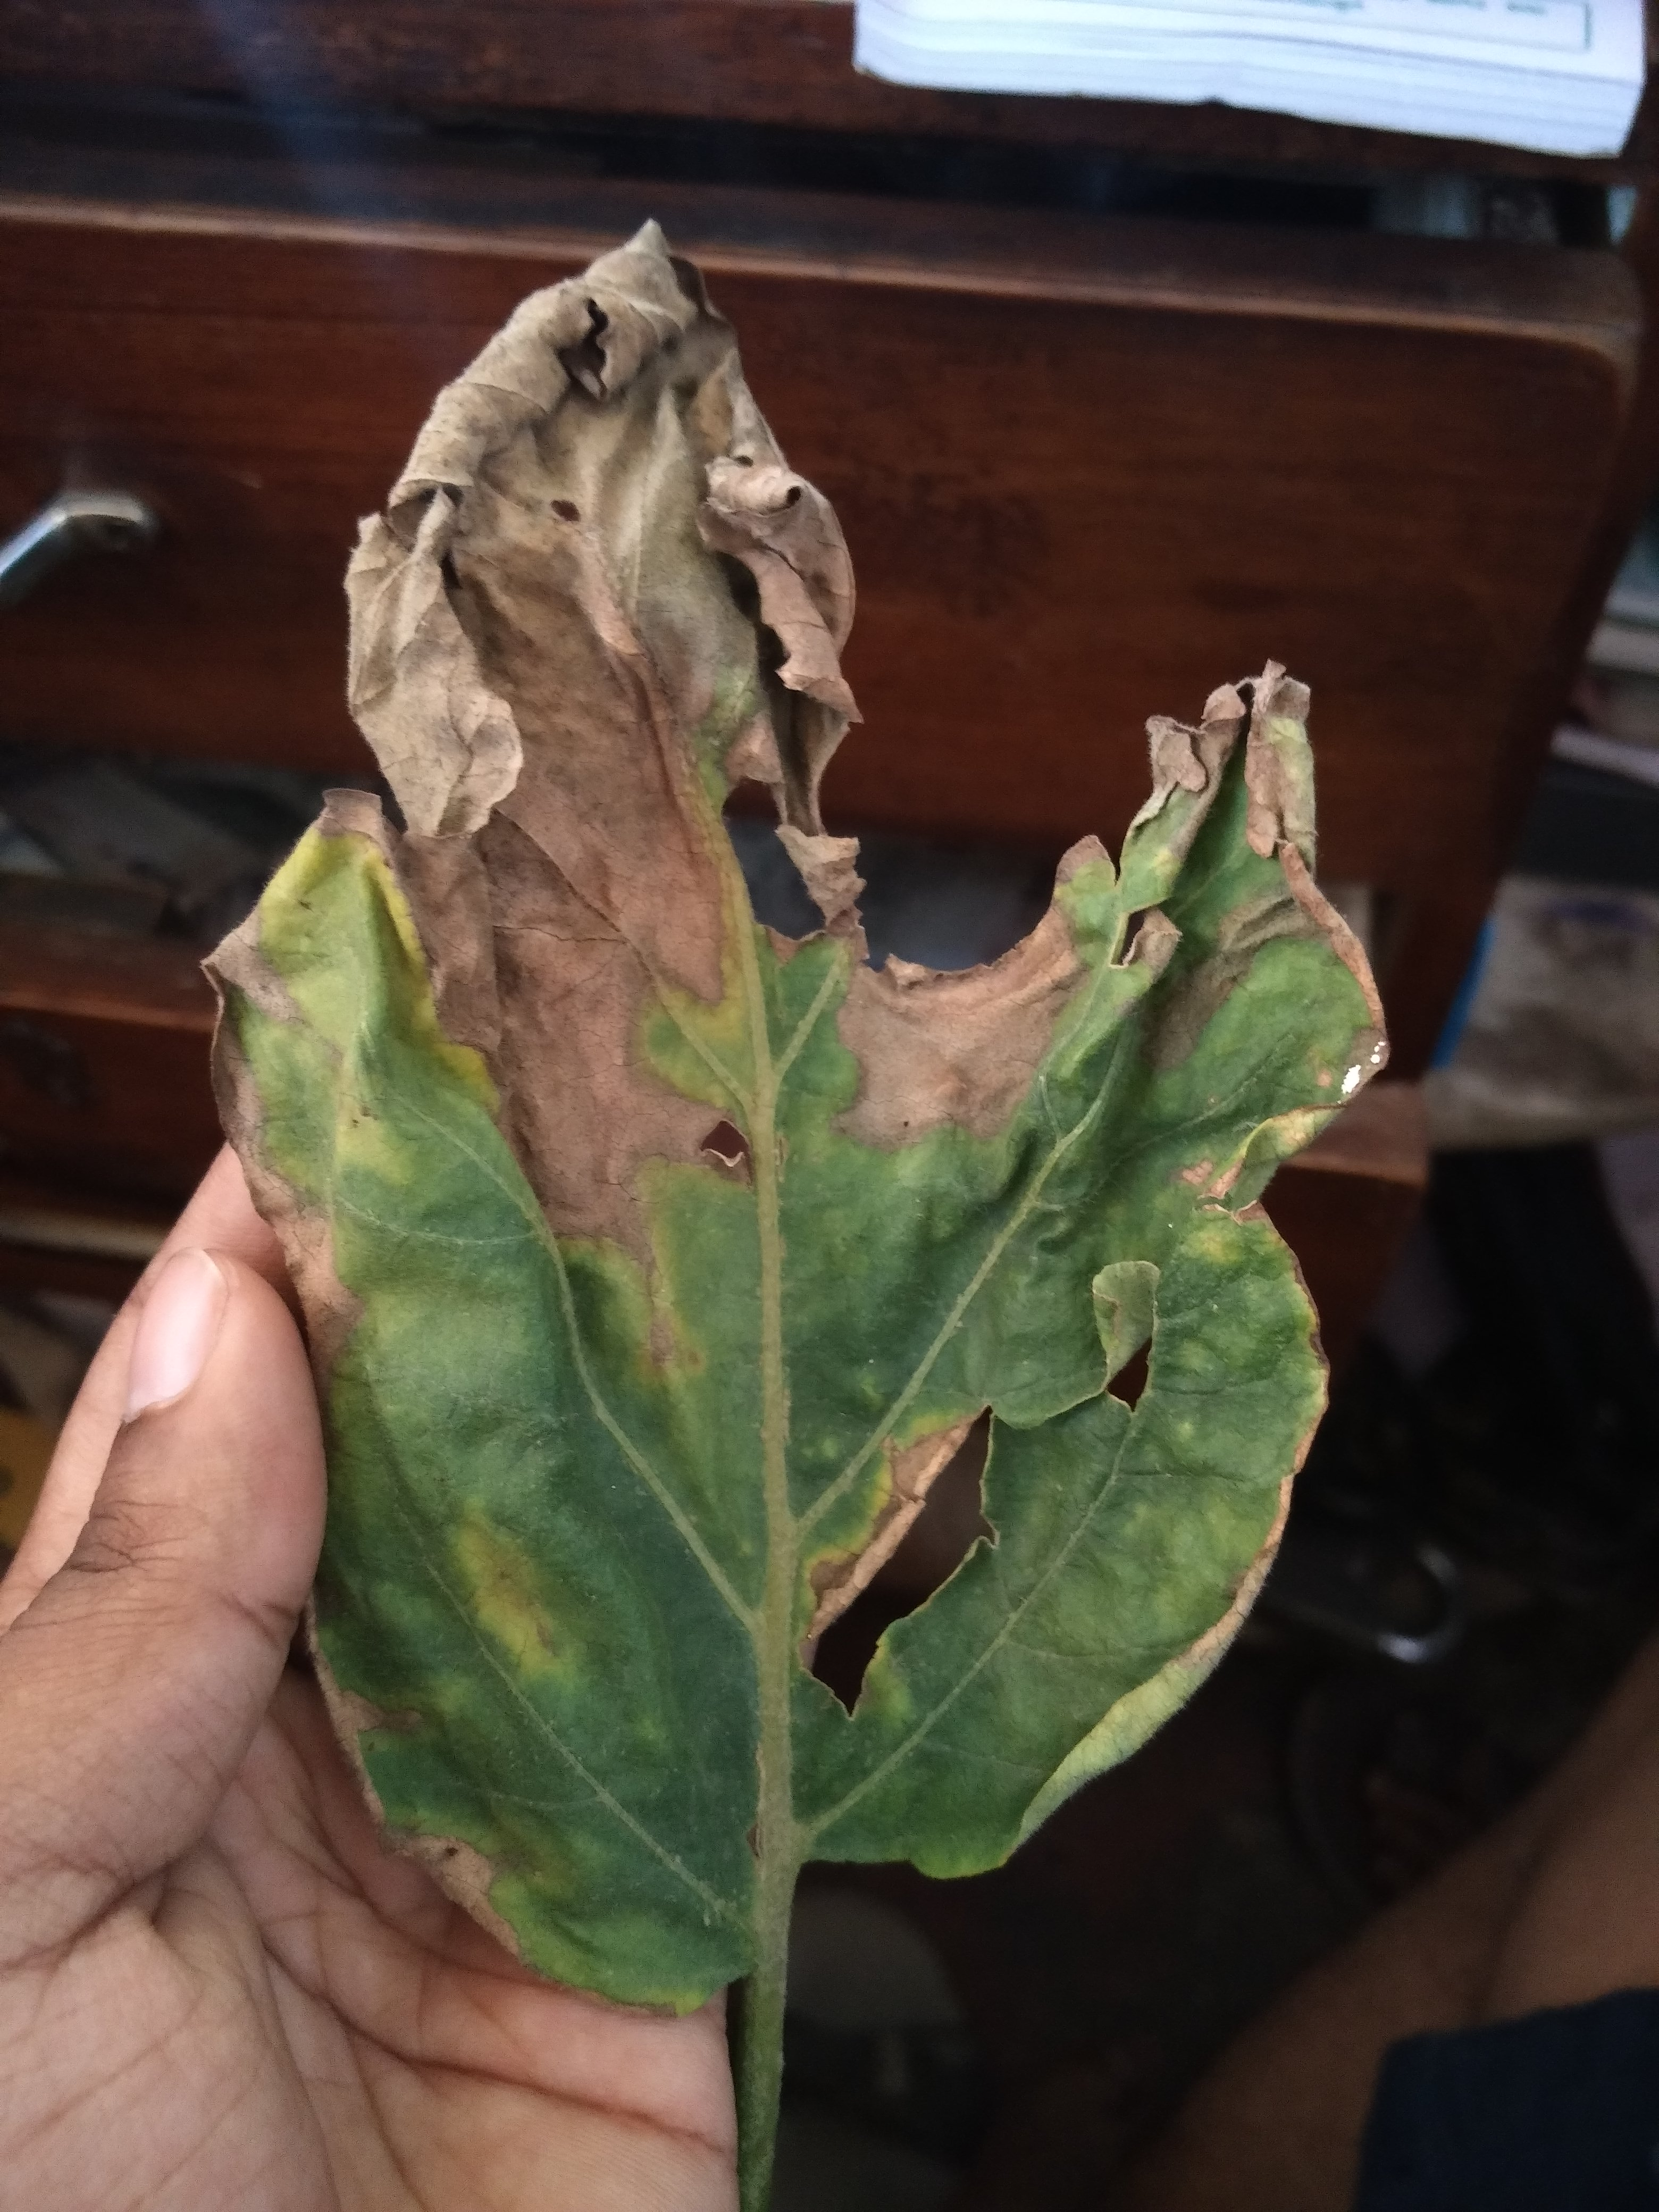 Eggplant leafs have dried as shown in the picture pls let me know what is the disease